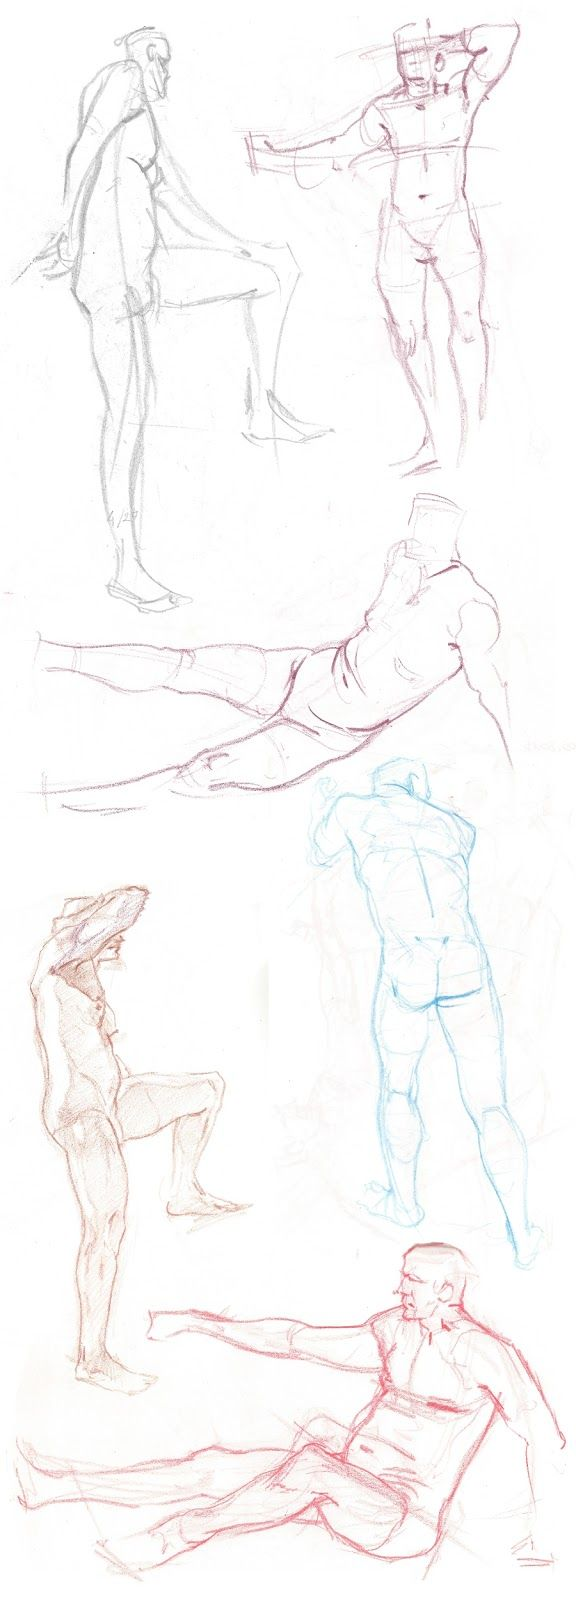 Lifedrawing session drawings